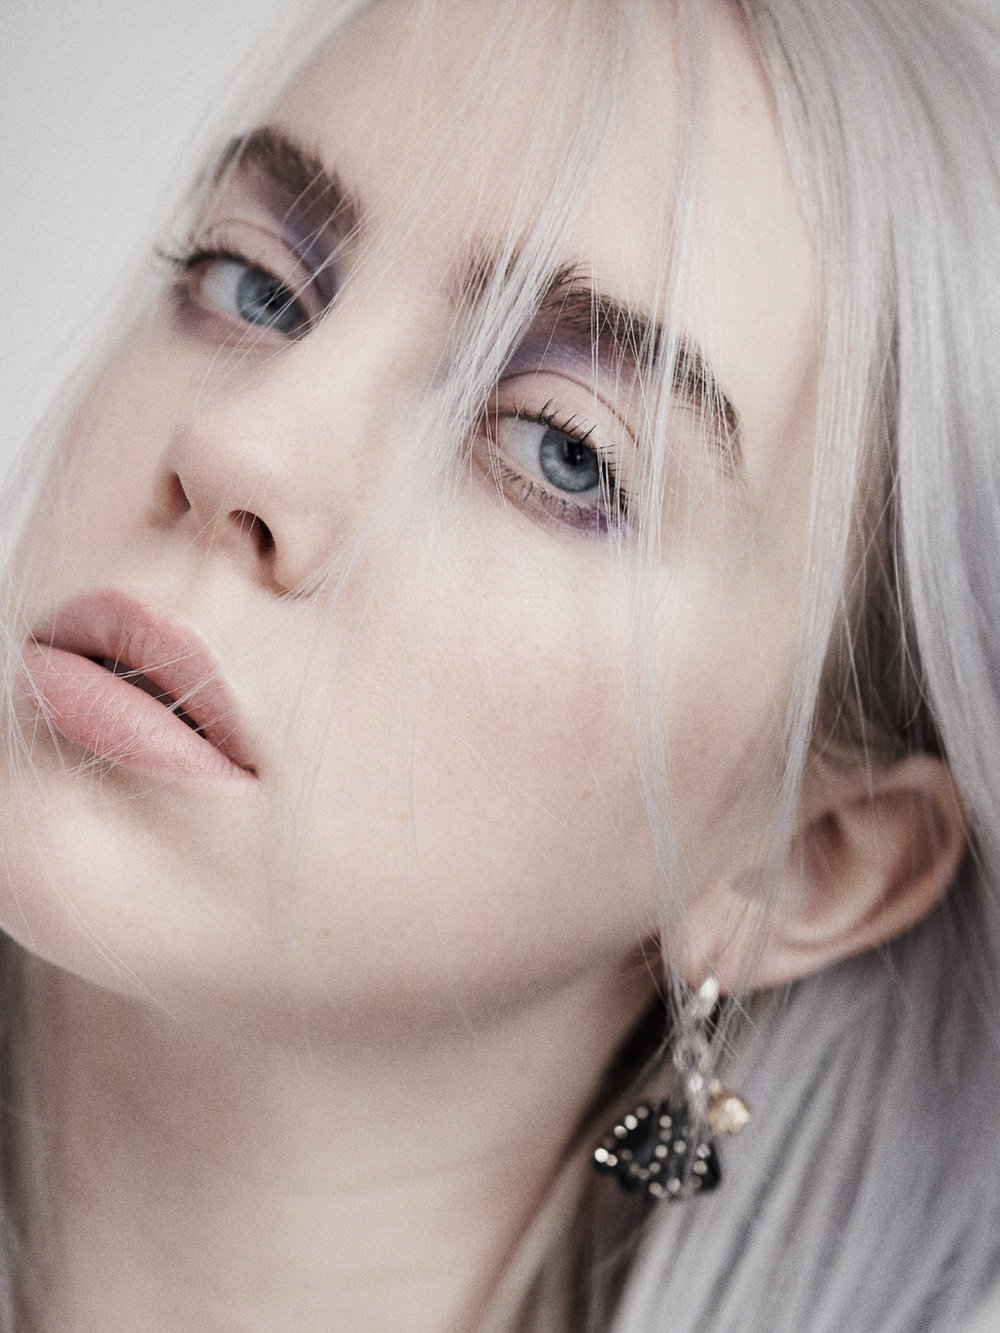 Billie_Eilish_James_ryang.jpg